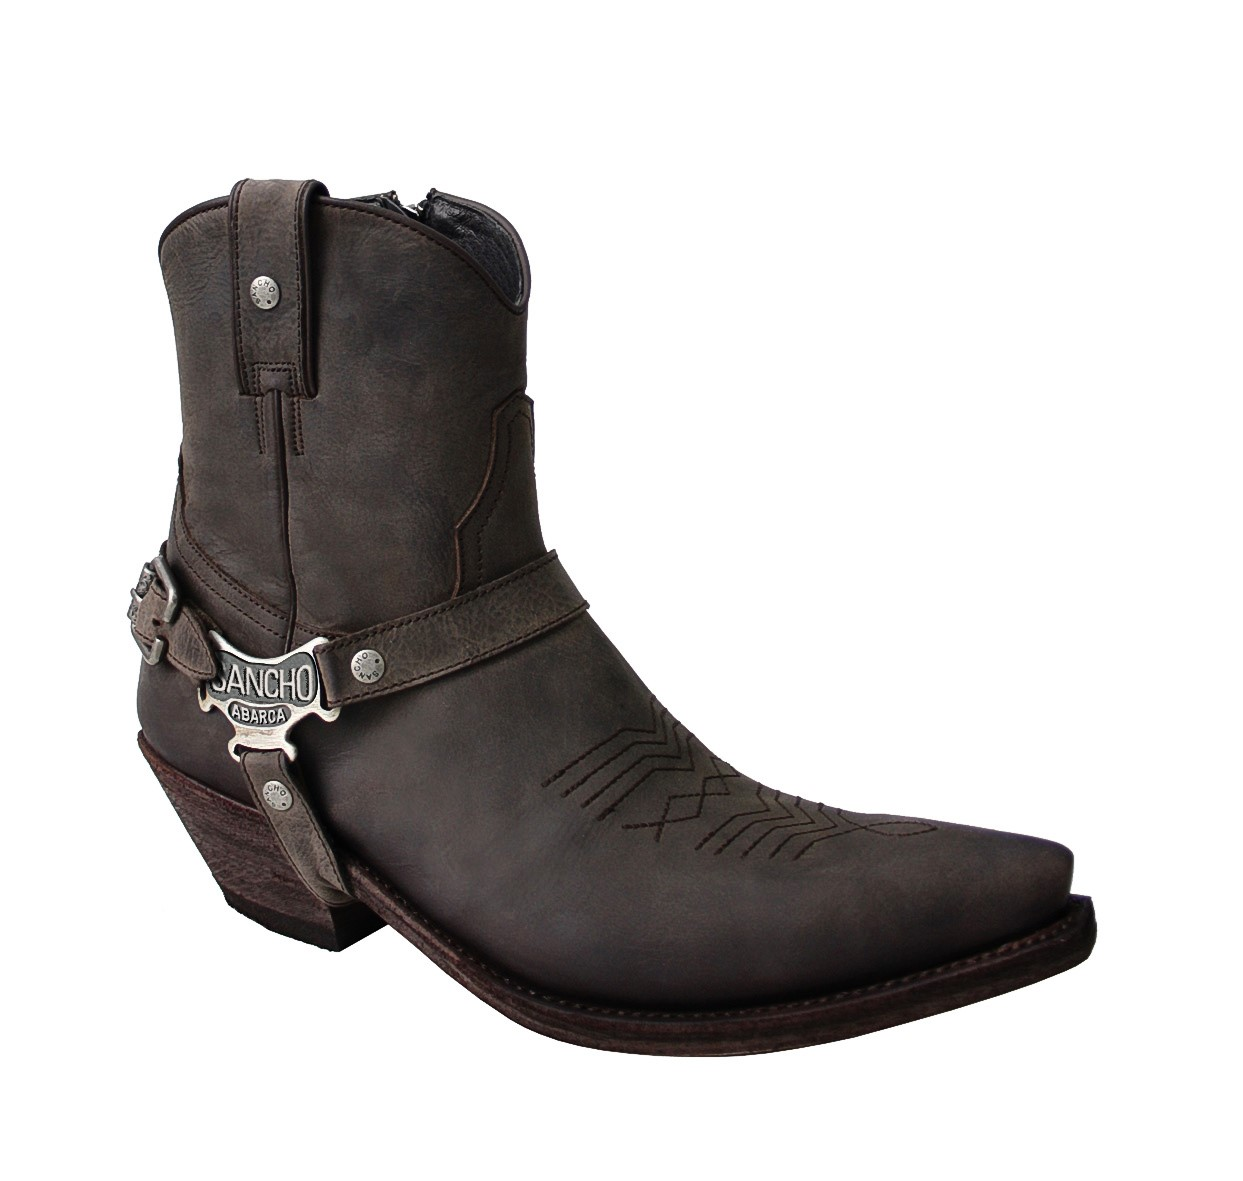 Sancho North Western Nairobi Caseniza Shoes International